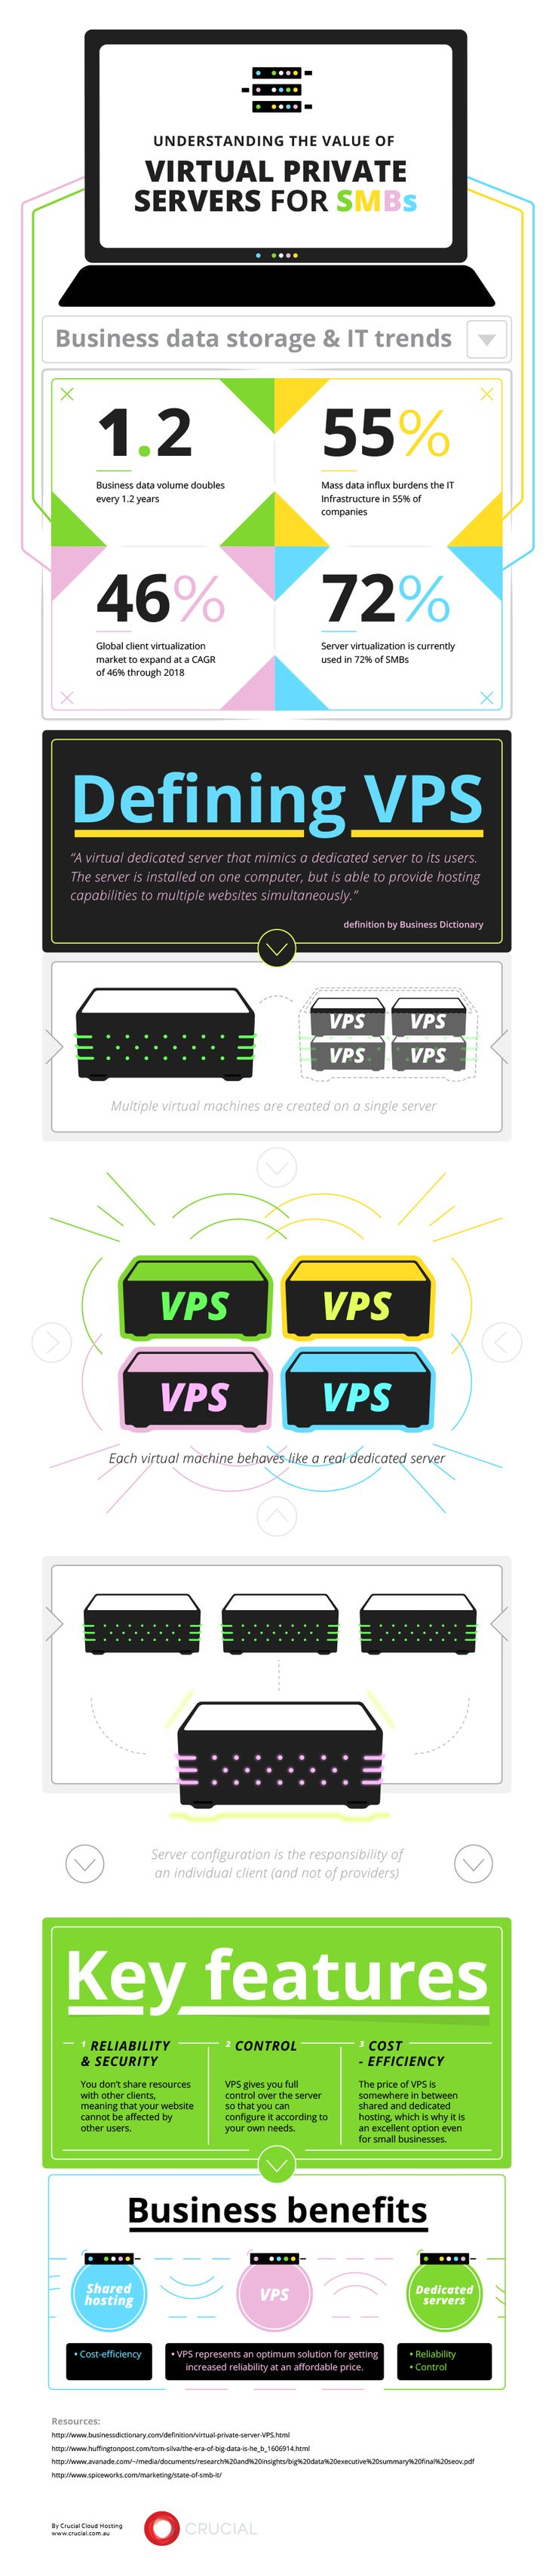 Understanding the Value of Virtual Private Servers for SMBs [Infographic]